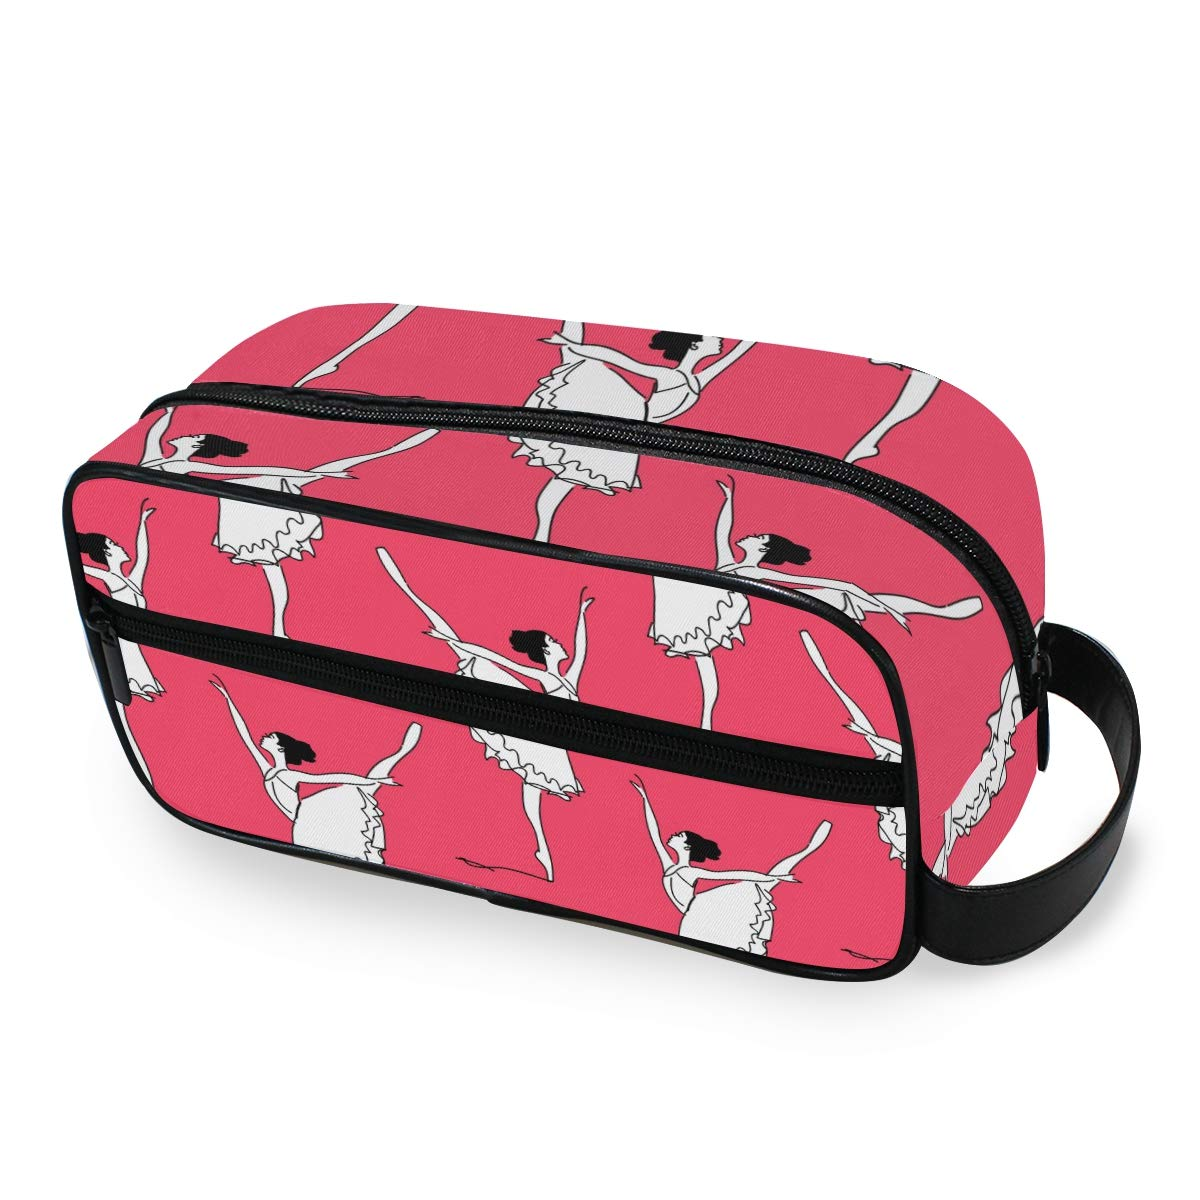 Travel Toiletries Bag Multifunction Portable Toiletry Ballet Dancer Cosmetic Makeup Bag Pouch Case Organizer for Woman Adults